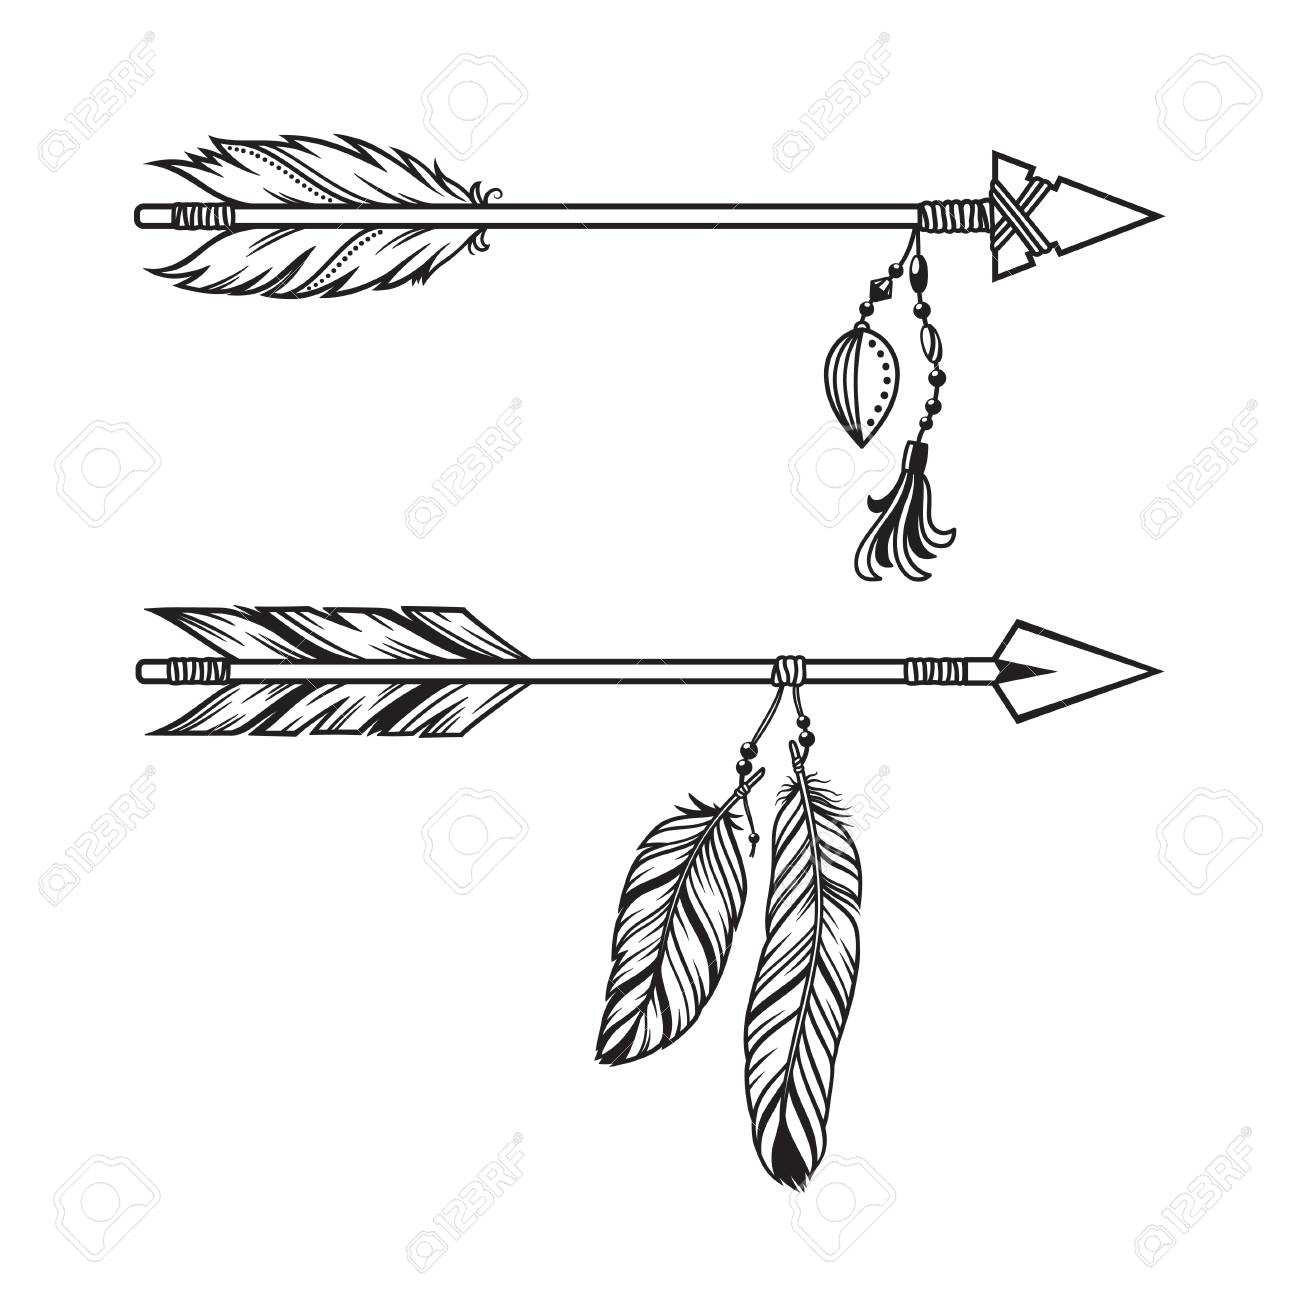 1697 Feathers free clipart.